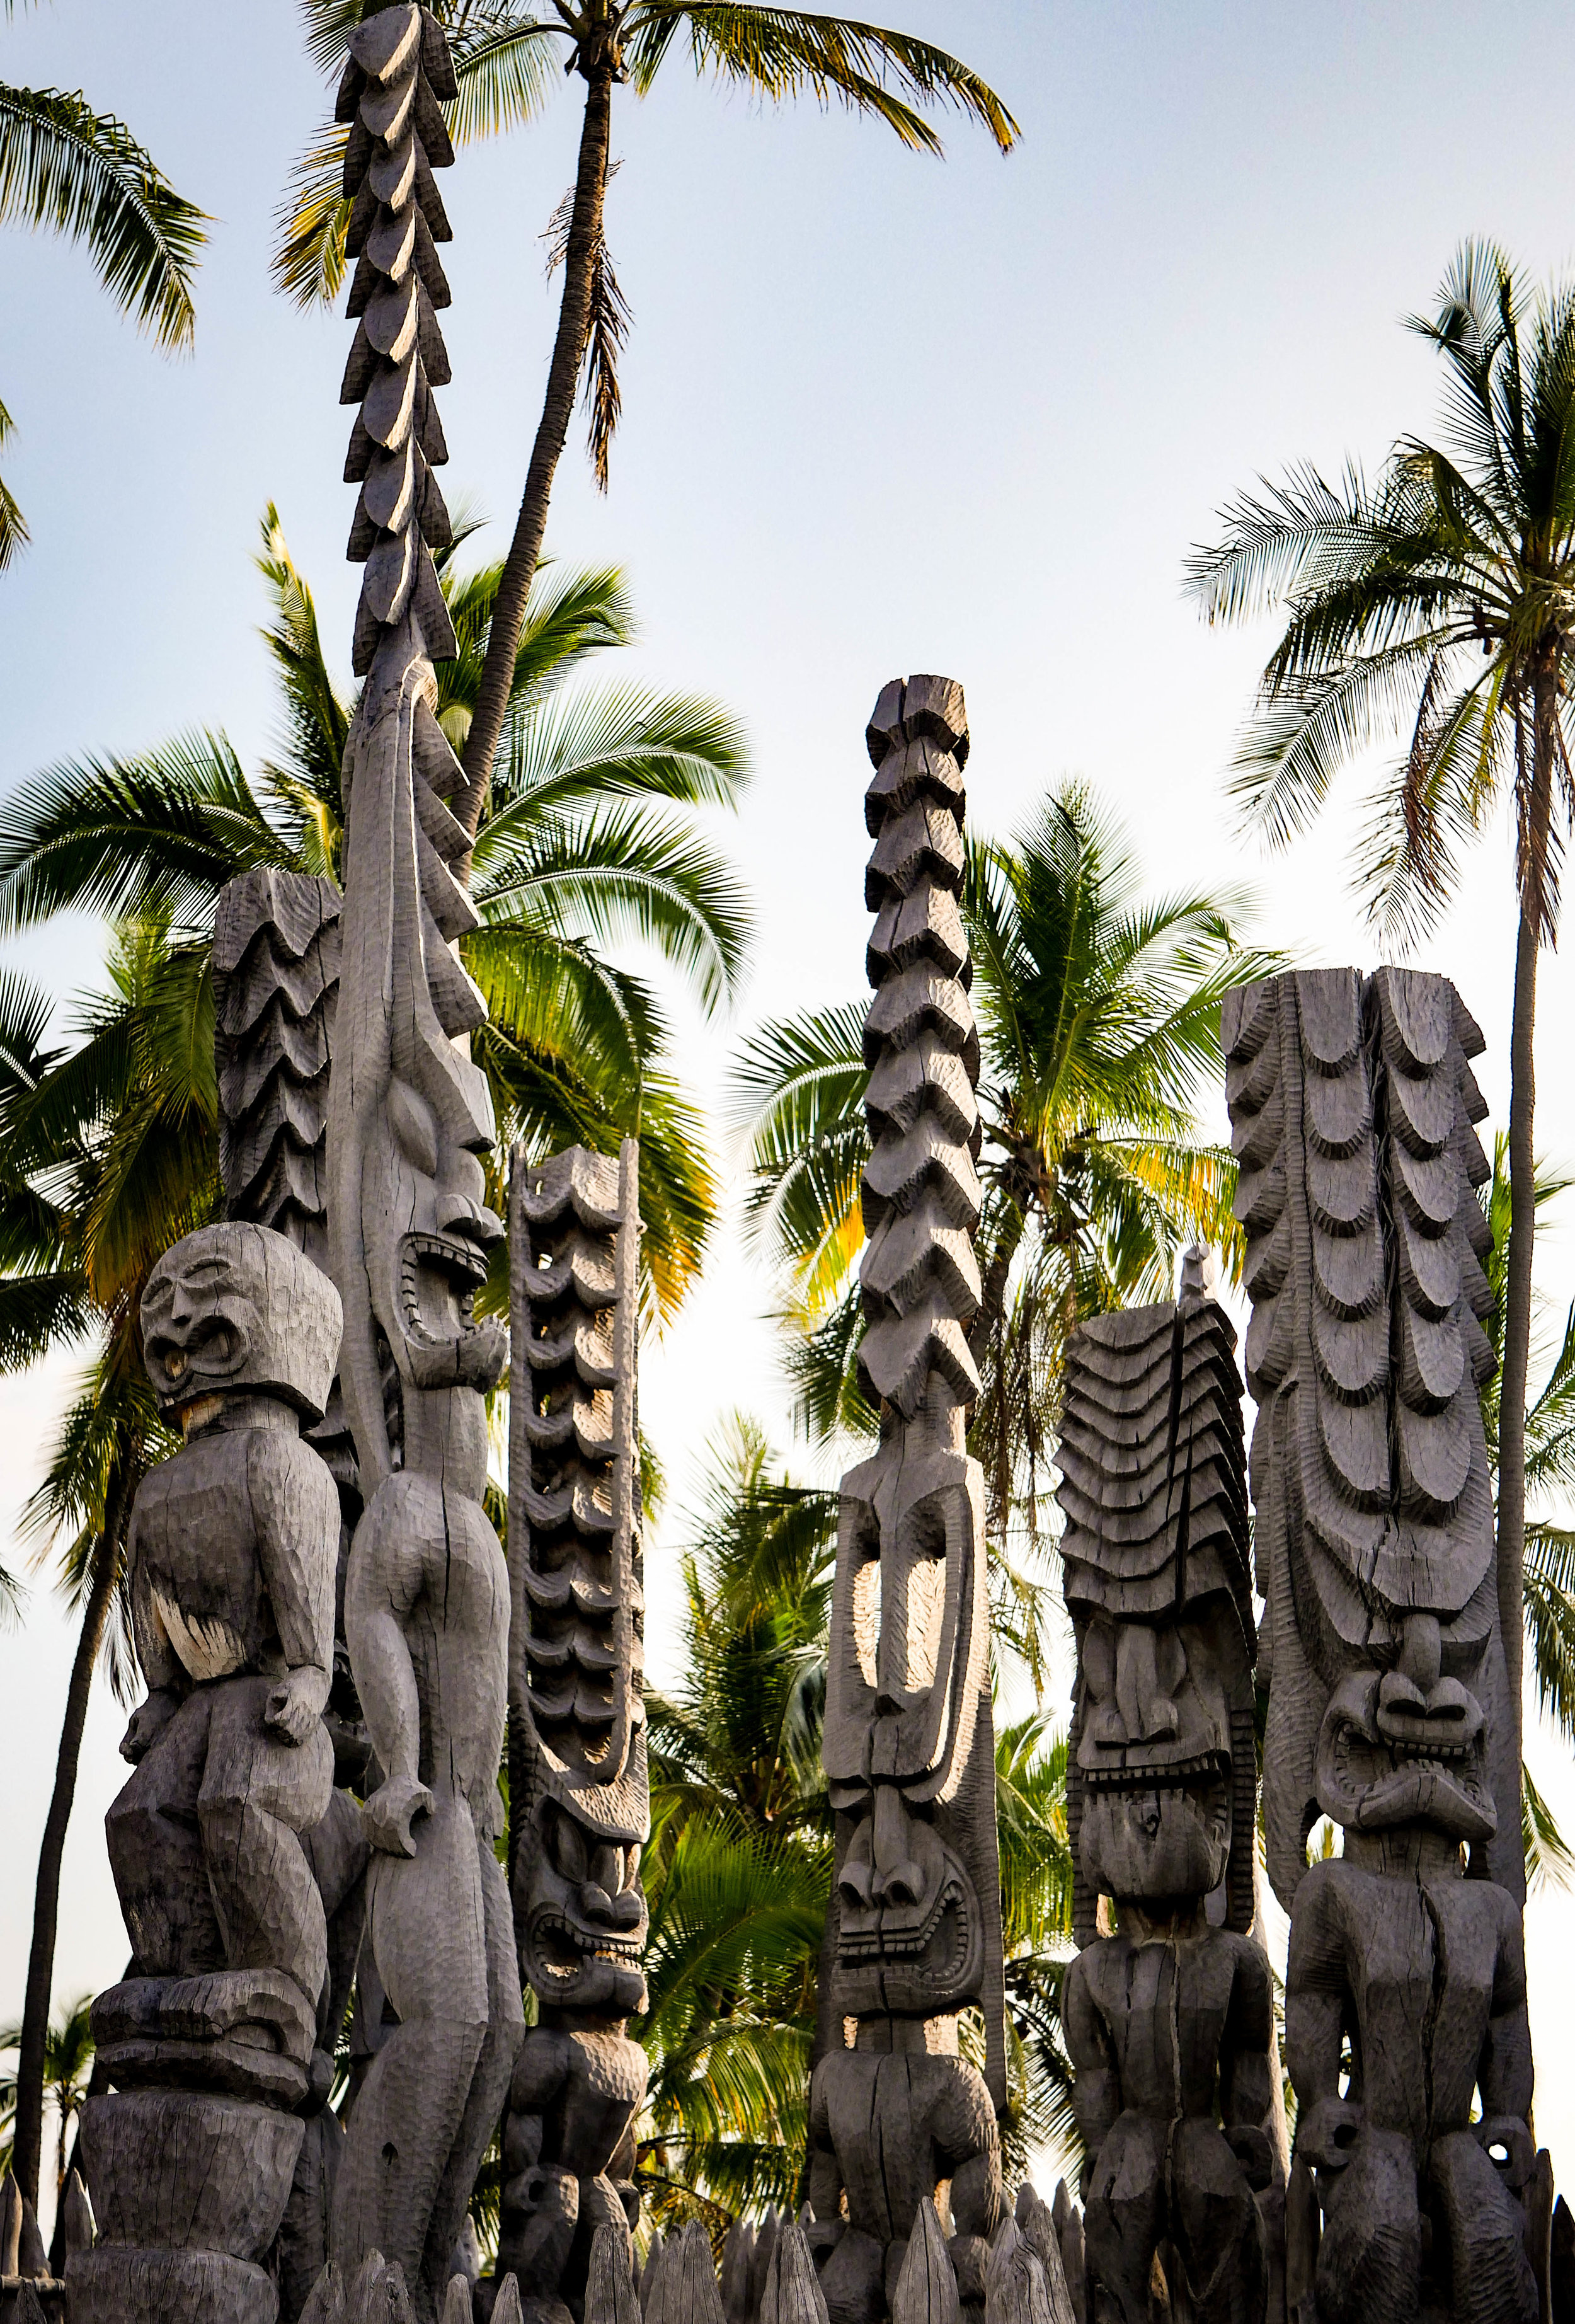 Kii, or protector statues, in front of the reconstructed Hale o Keawe